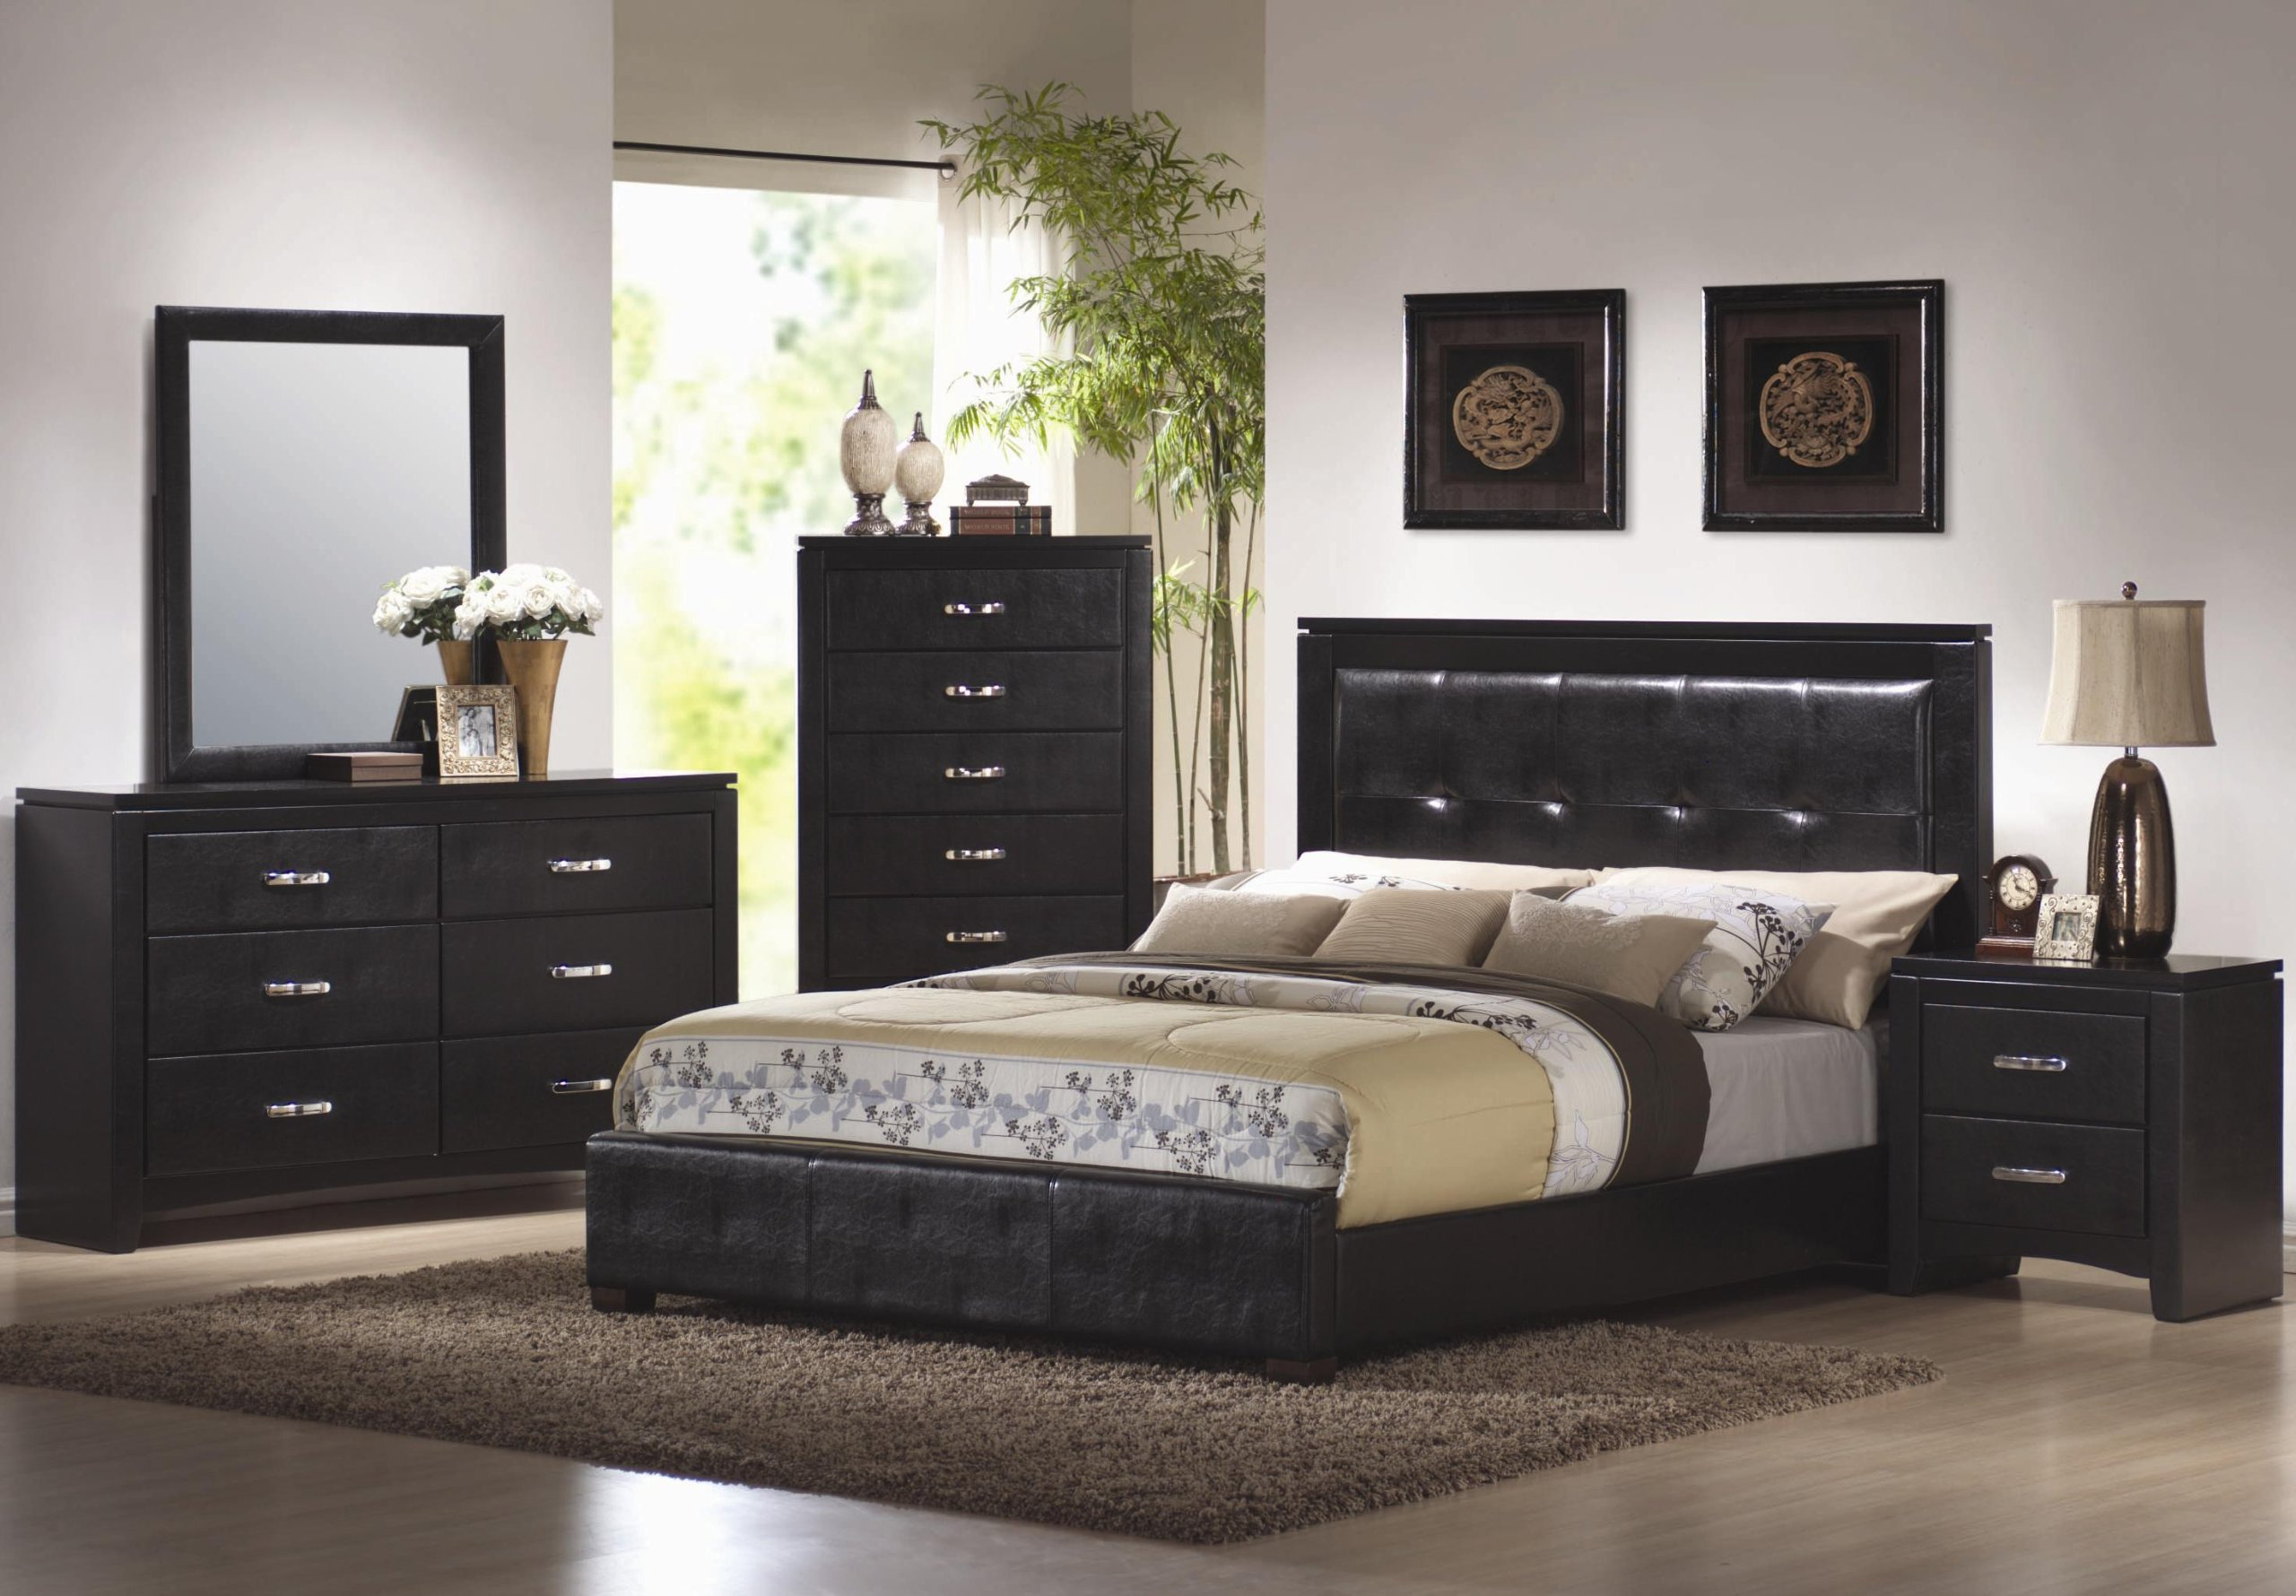 Amazon com 4pc california king size bedroom set in black finish kitchen dining